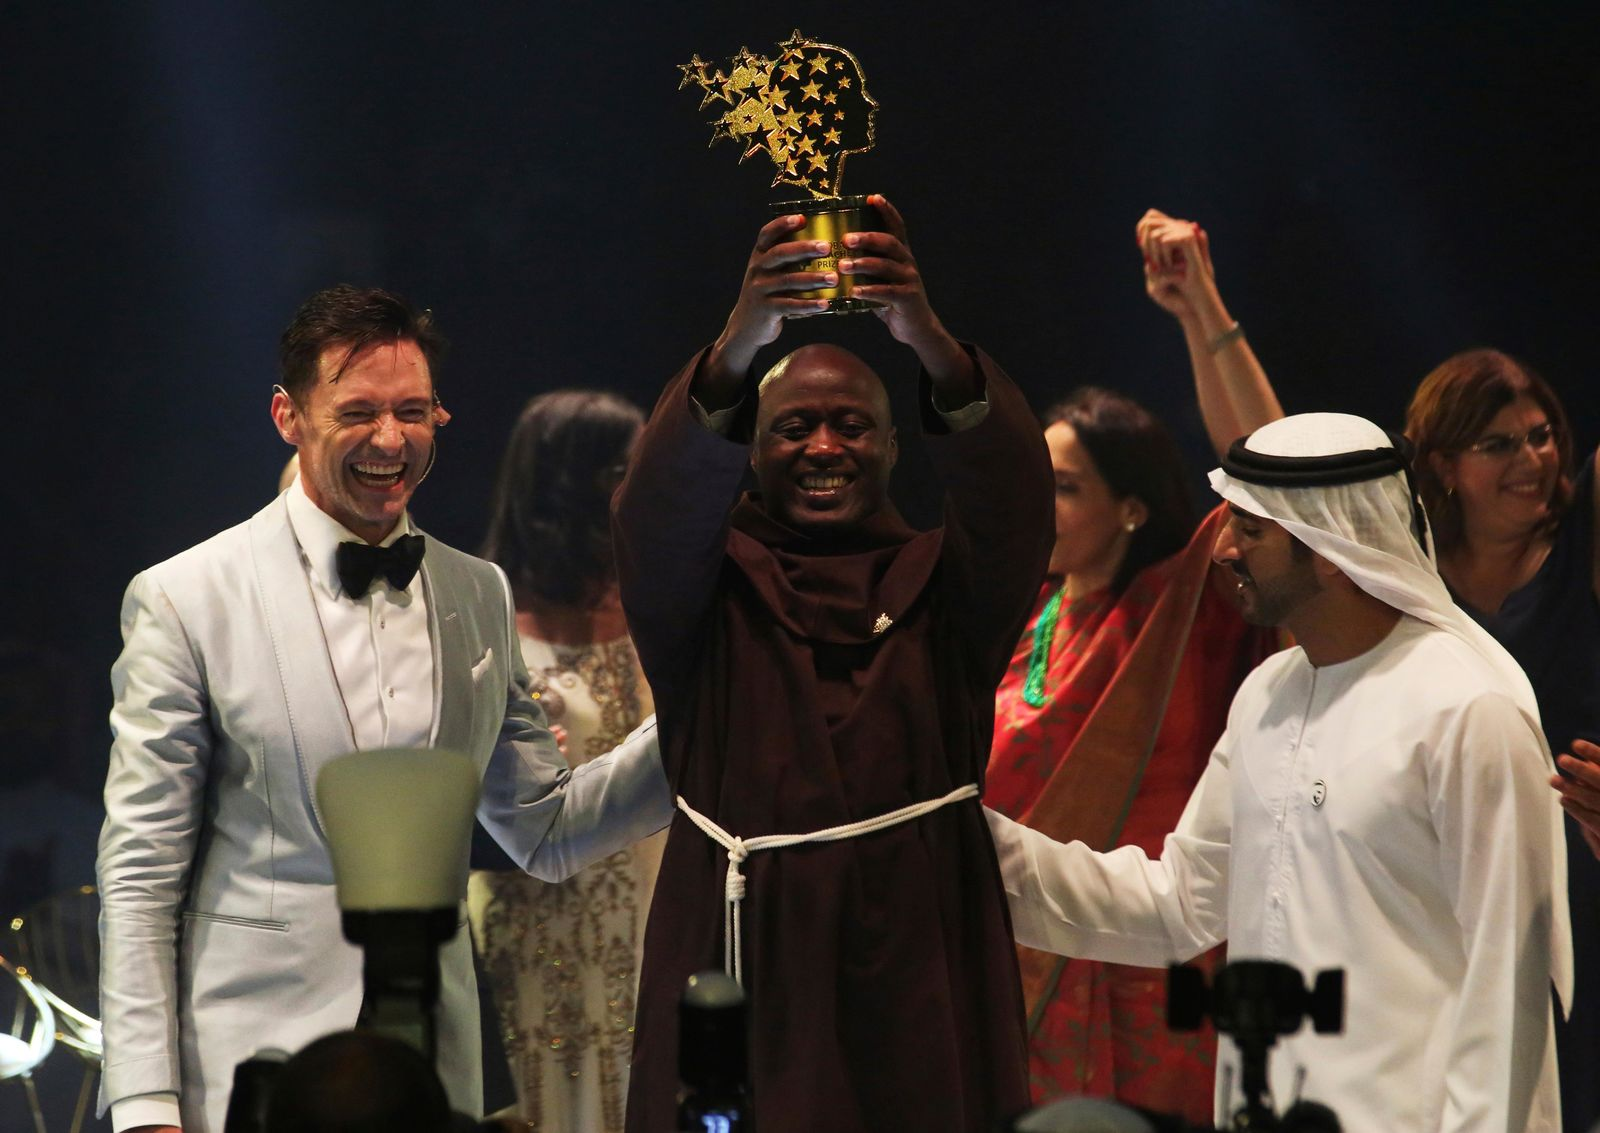 Kenyan teacher Peter Tabichi, center, actor Hugh Jackman, left, and Dubai crown prince Sheikh Hamdan bin Mohammed Al Maktoum, right, react after Tabichi won the $1 million Global Teacher Prize in Dubai, United Arab Emirates, Sunday, March 24, 2019(AP Photo/Jon Gambrell)